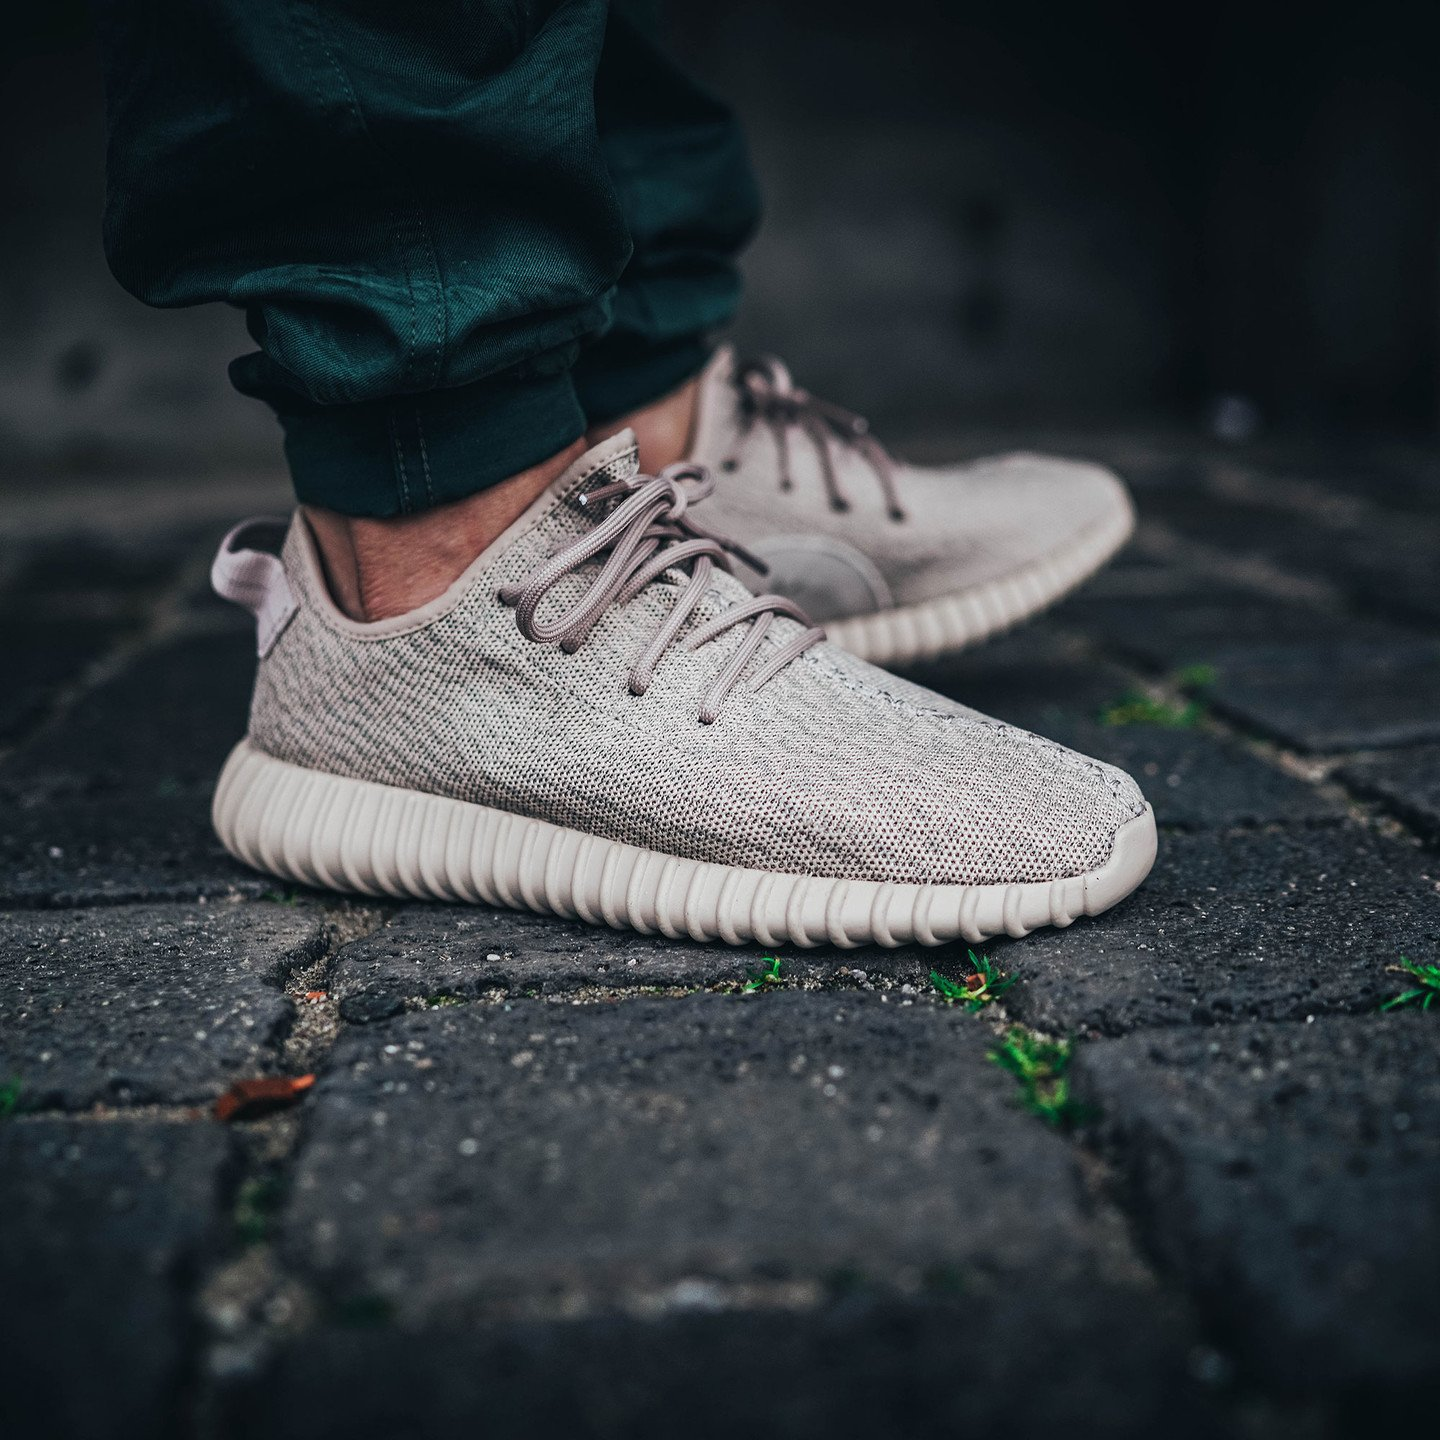 Adidas Yeezy Boost 350 Light Stone / Oxford Tan AQ2661